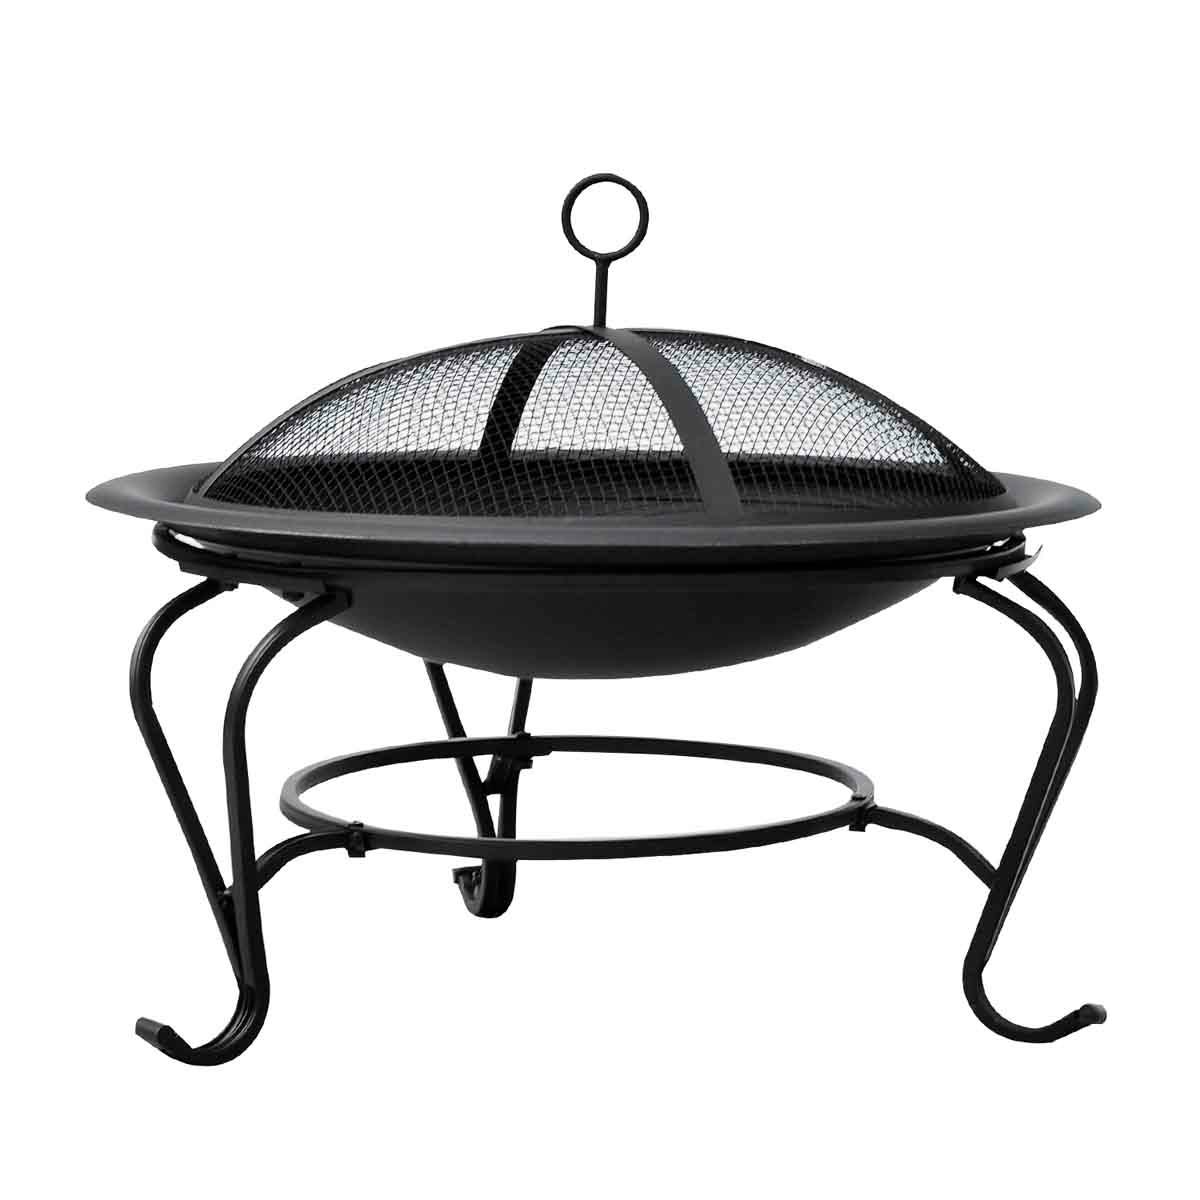 Outsunny Outdoor Fire Pit - Black